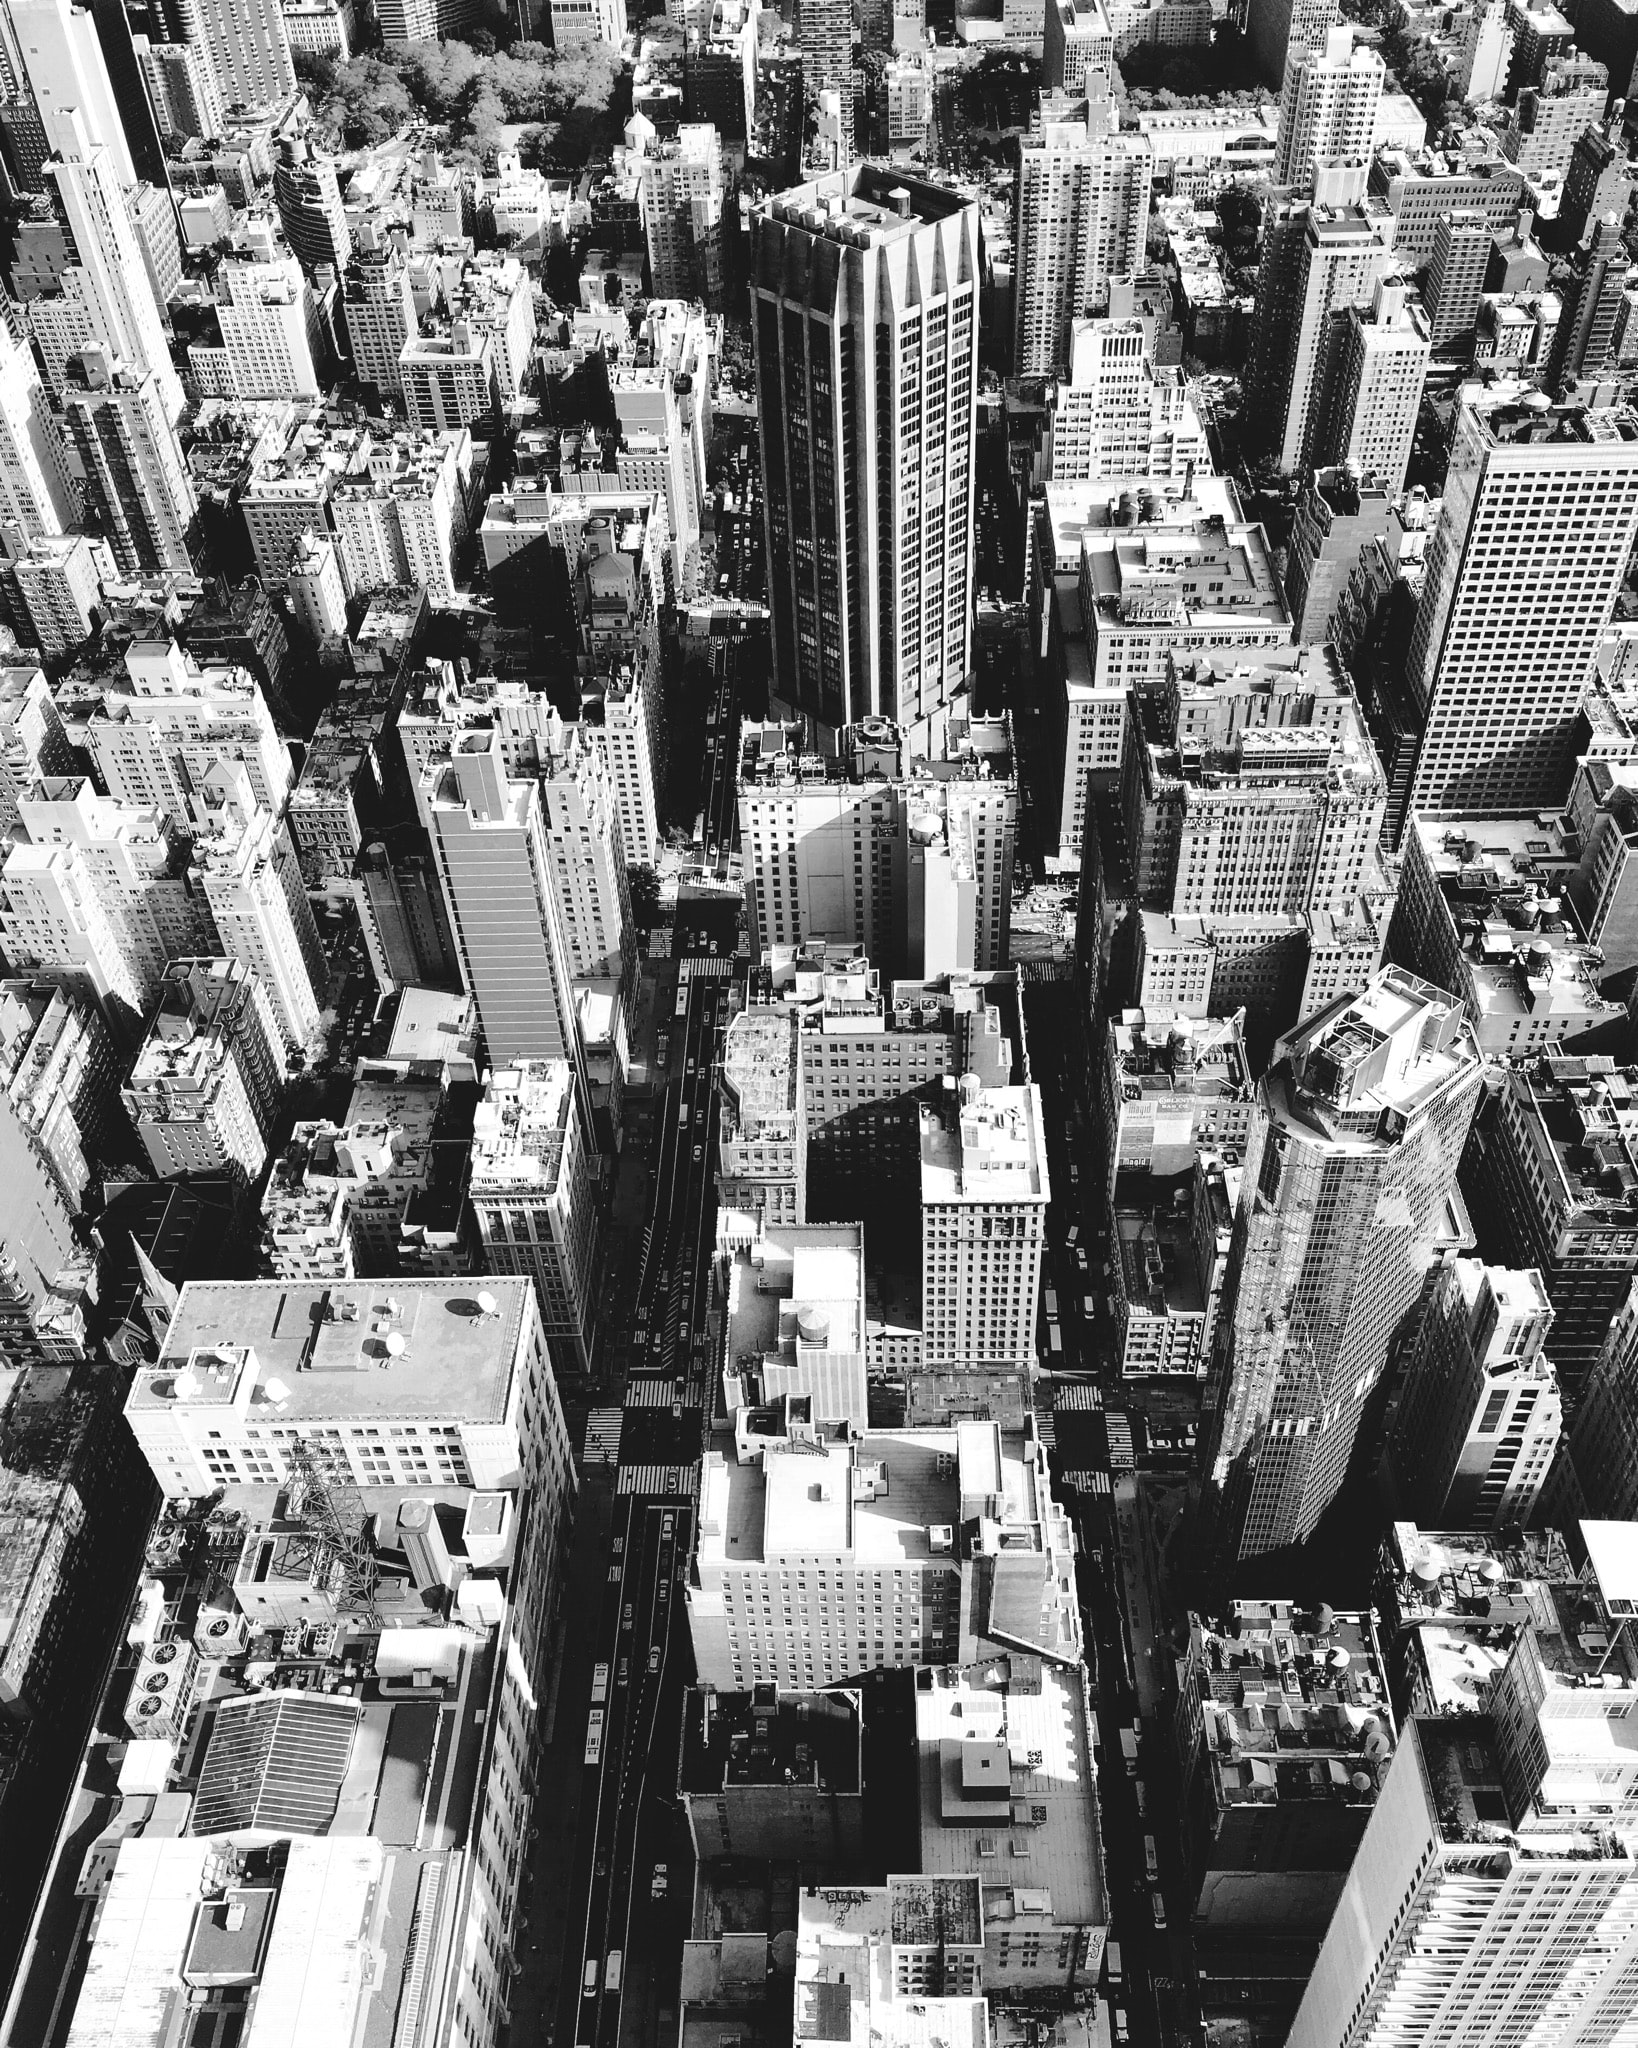 Black and white drone shot of city buildings and skyscrapers